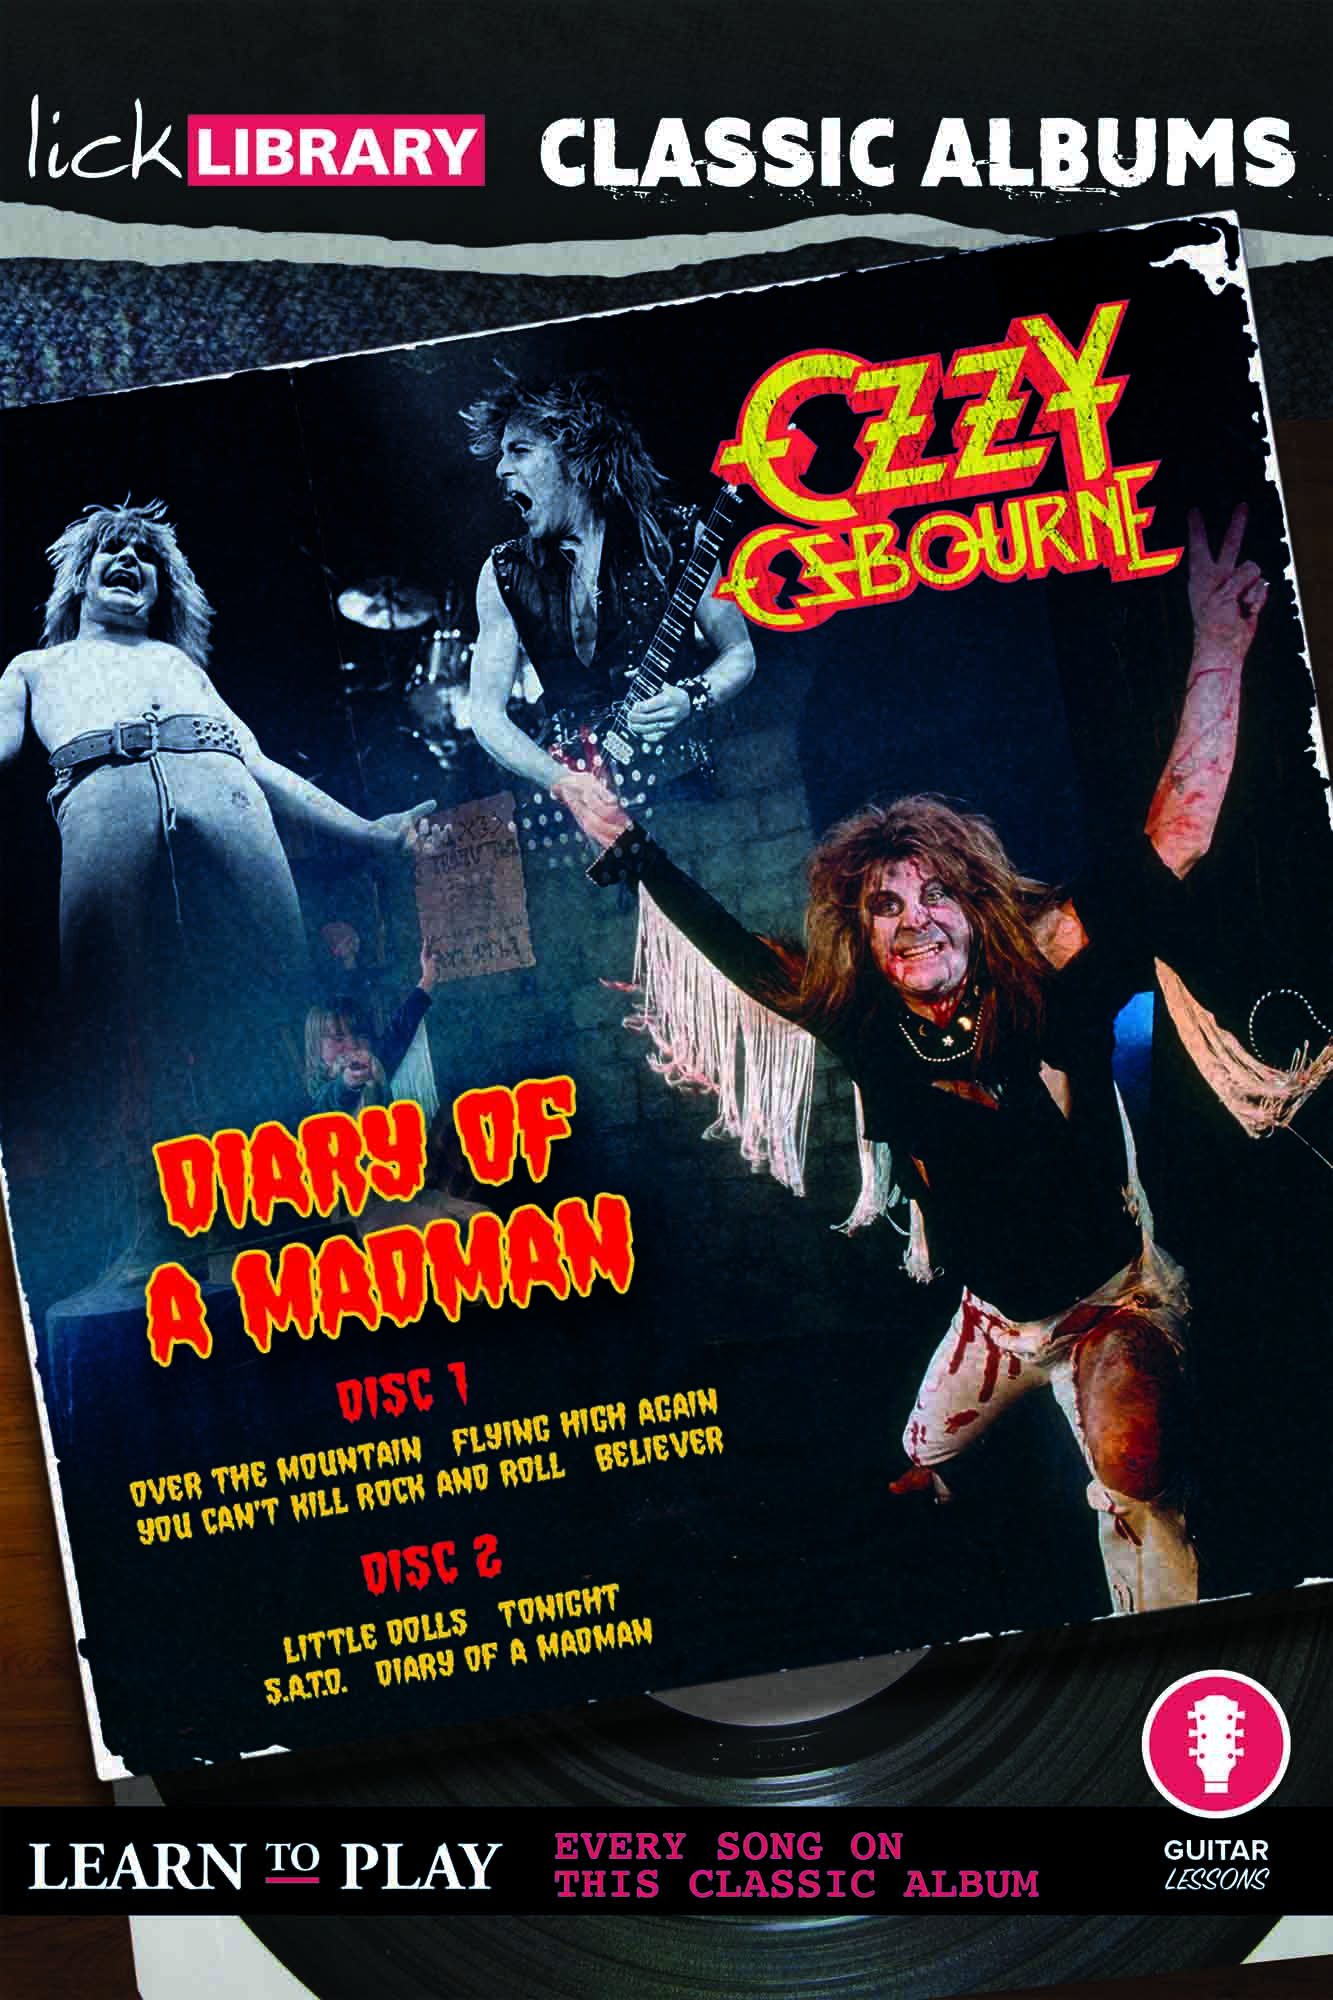 Classic Albums - Diary Of A Madman